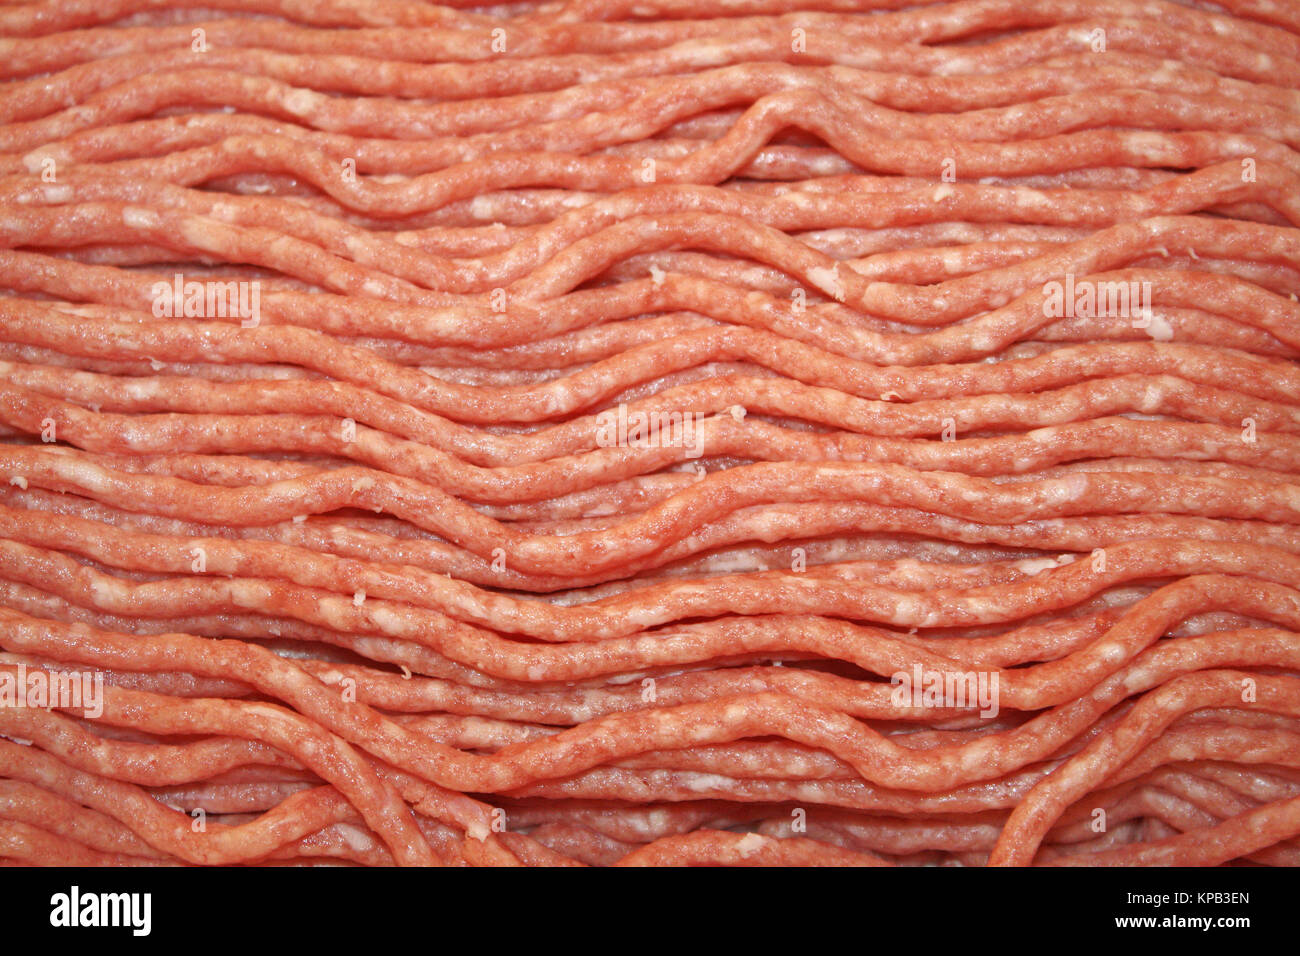 Lean Ground Beef fresh from the Butcher - Stock Image